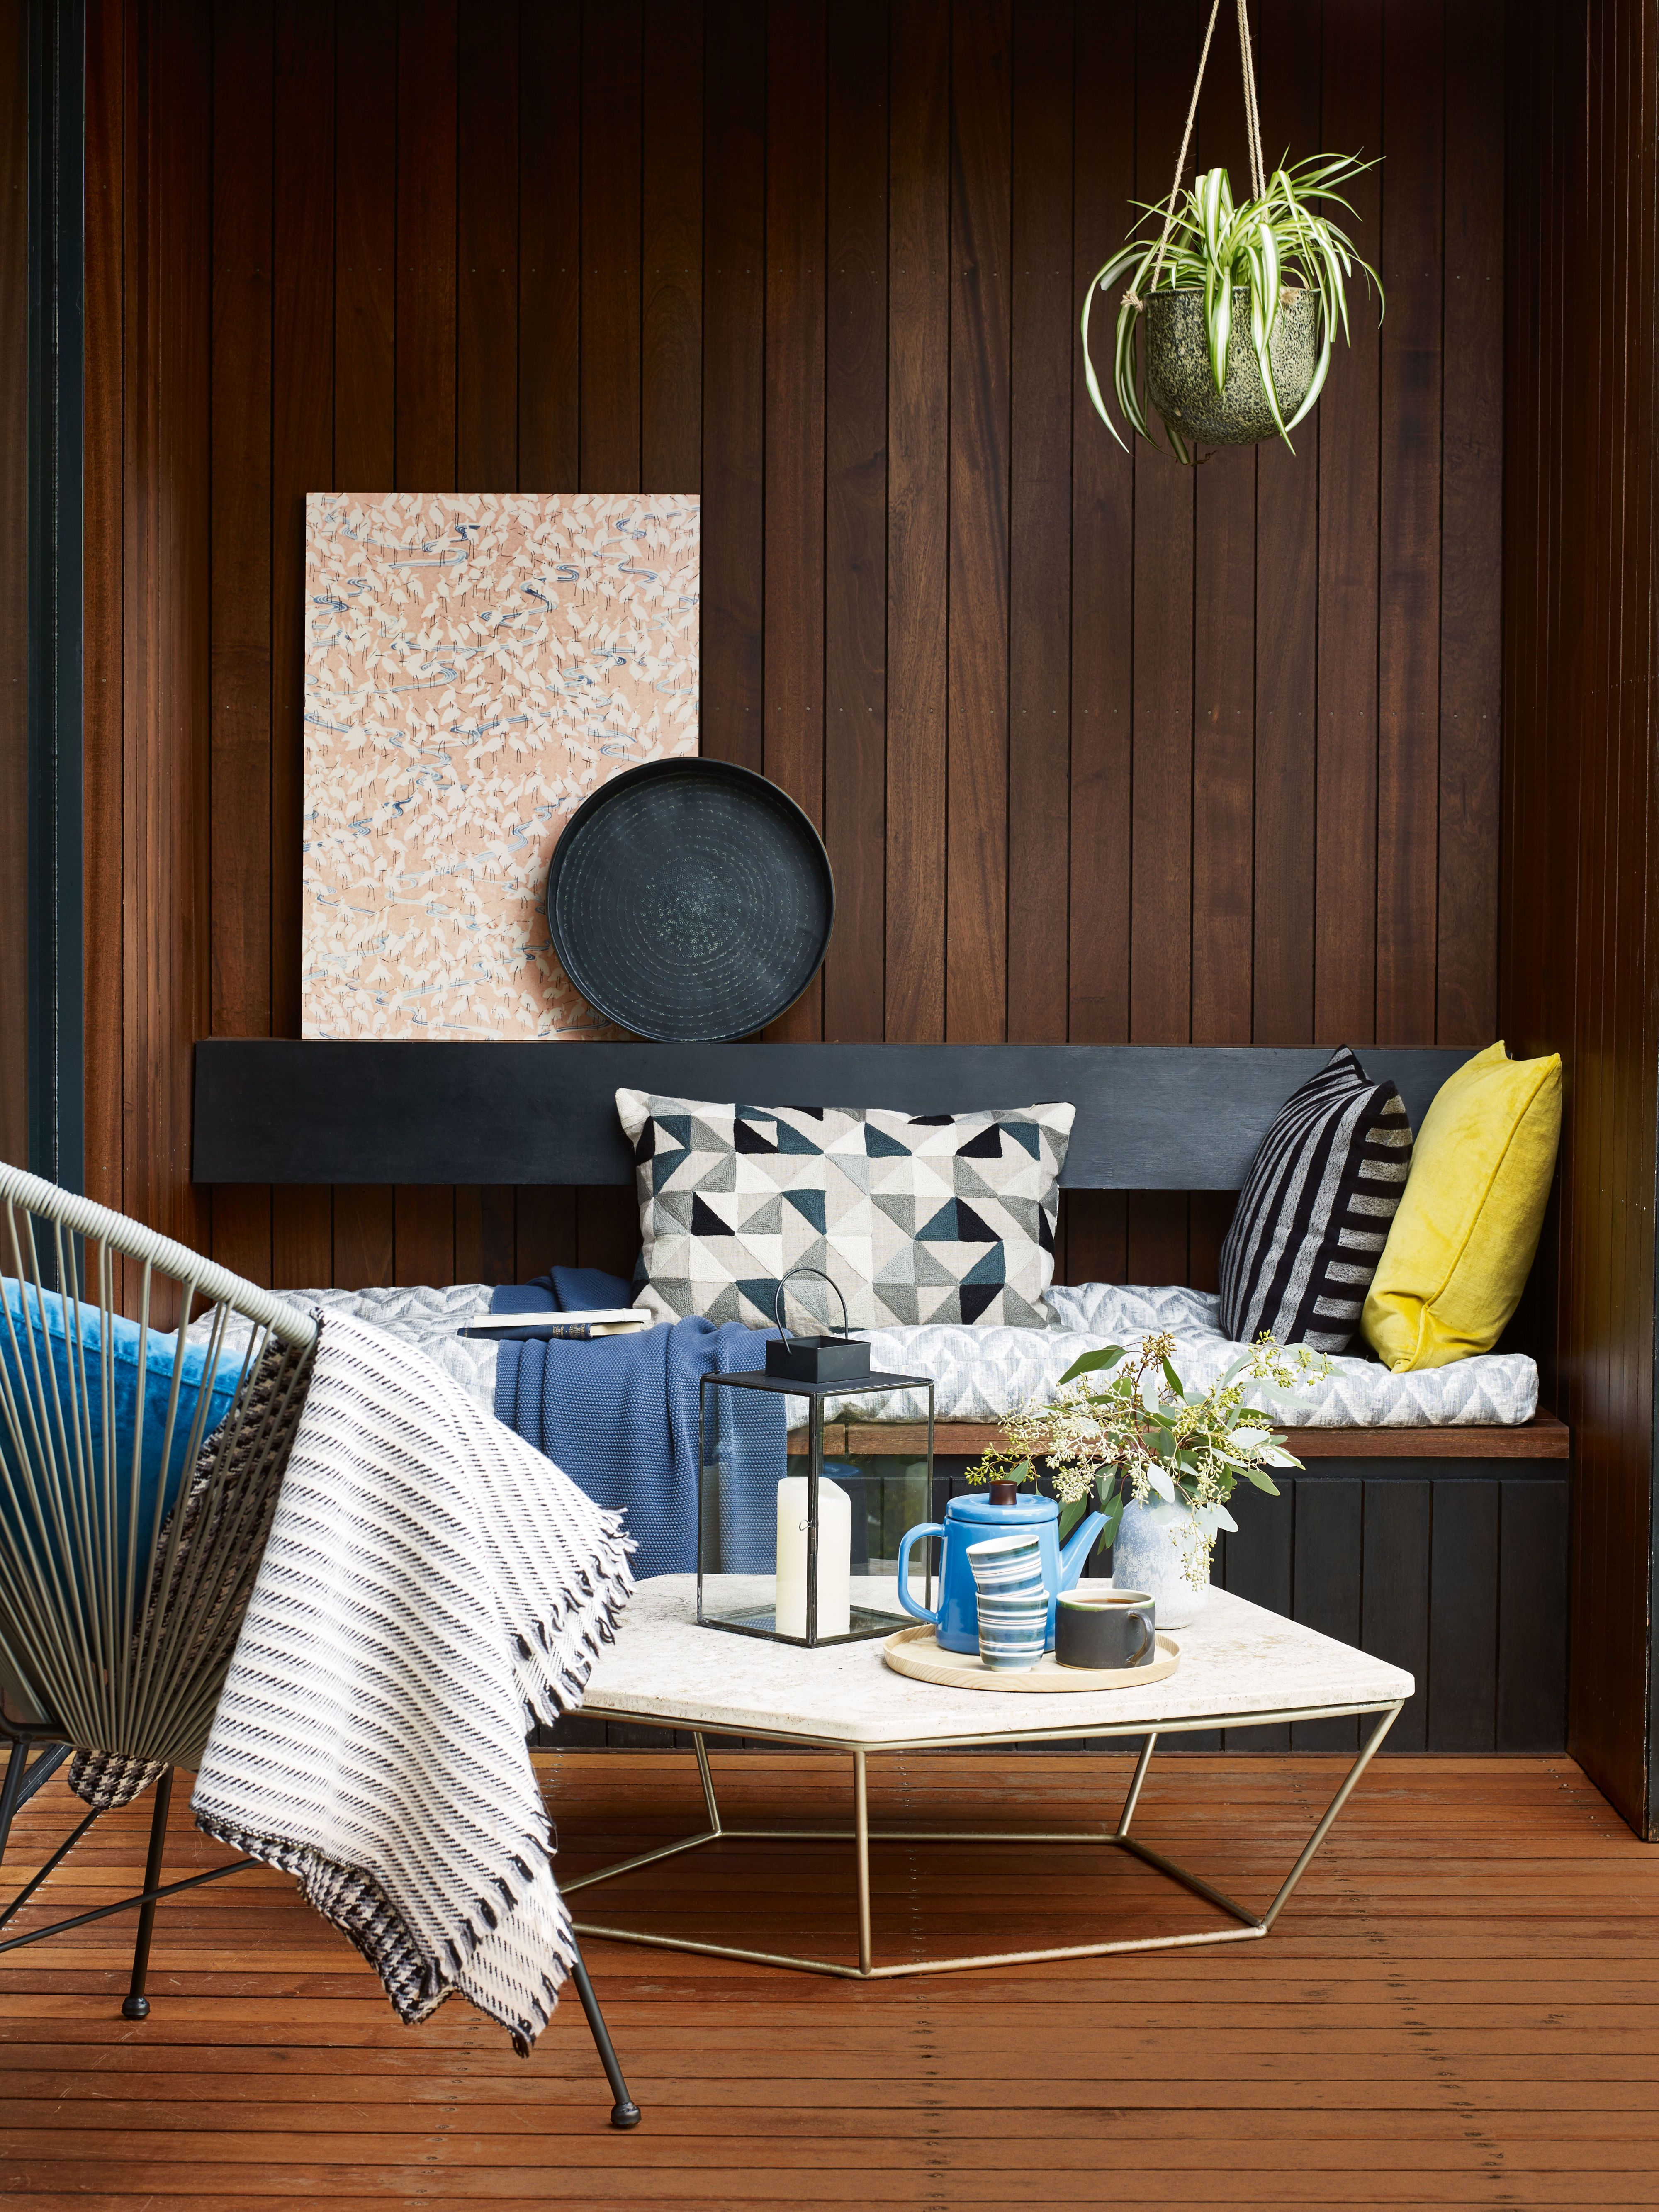 Modern Oriental Decorating Ideas   Style Inspiration Styling By Marisa  Daley. Styling Assistant: Amy